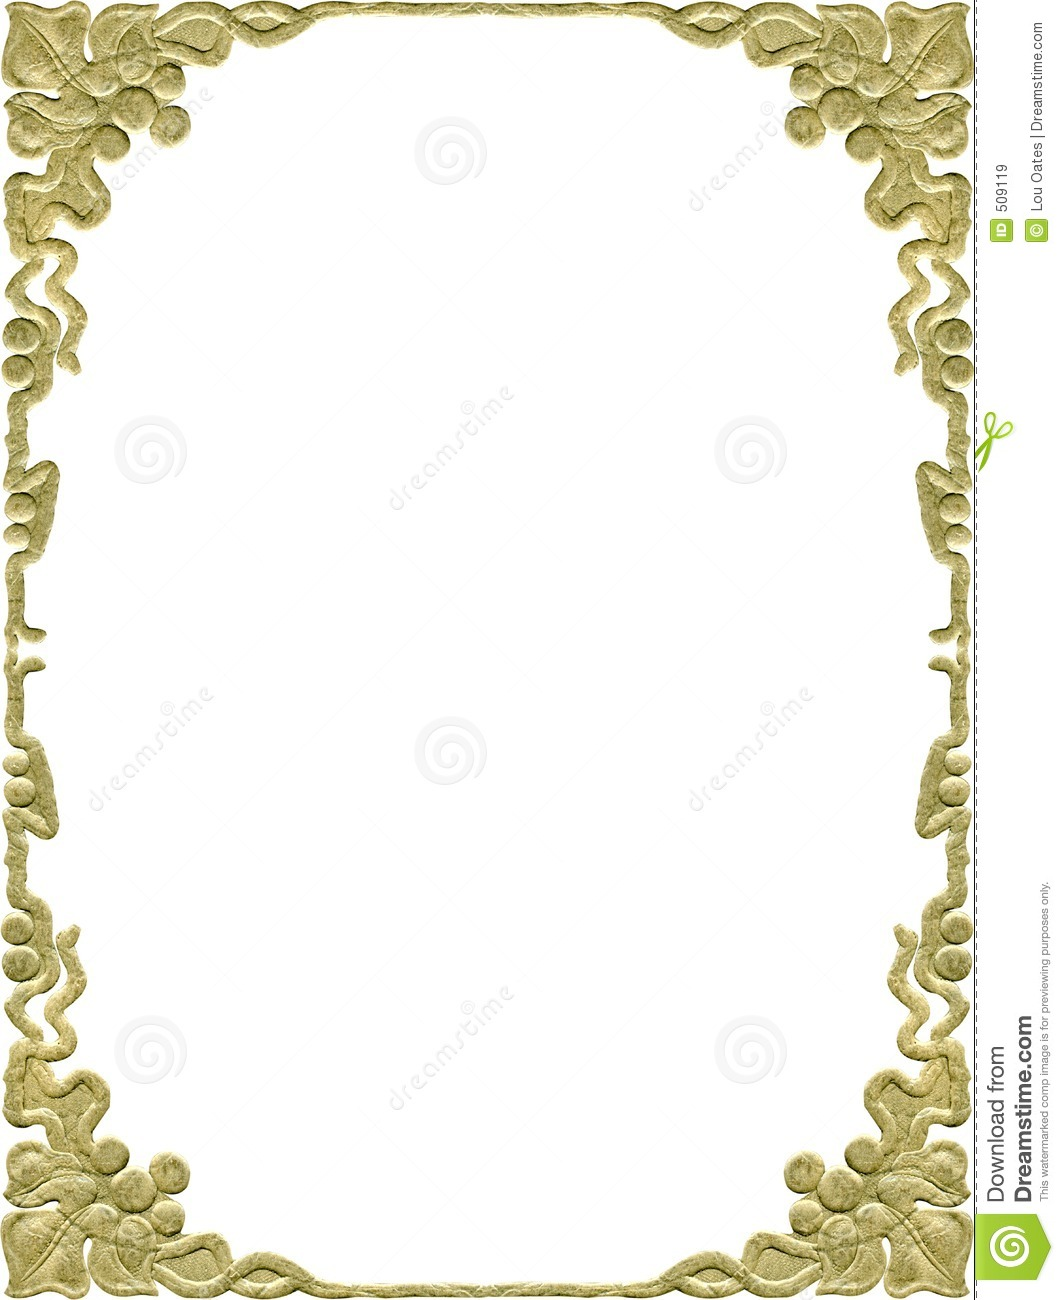 Vintage Gold Frame Border Design